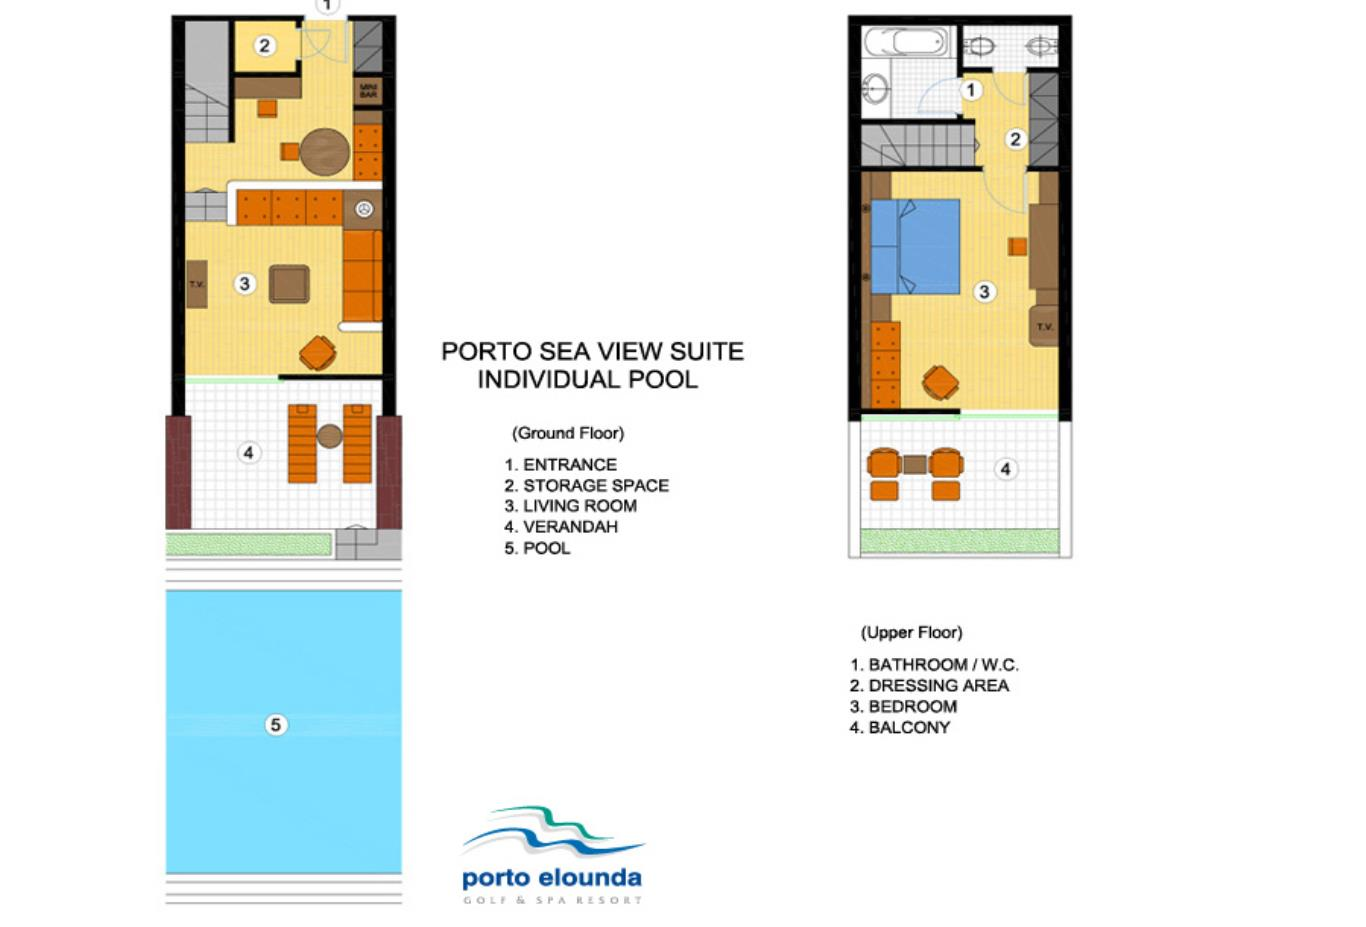 Porto Sea View Suite Individual Pool floorplan